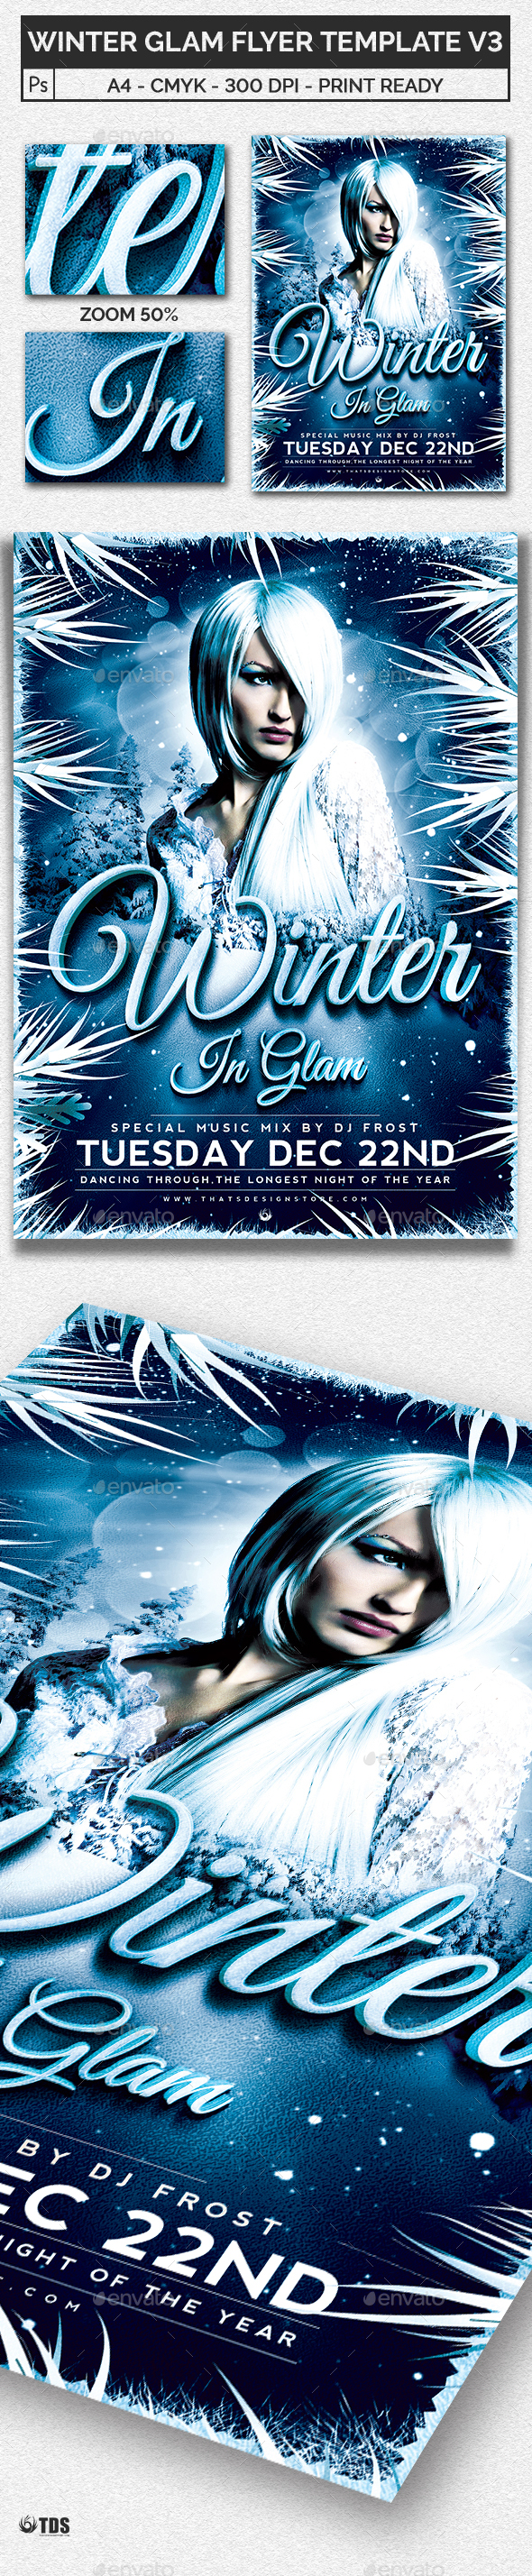 Winter Glam Flyer Template V3 - Clubs & Parties Events